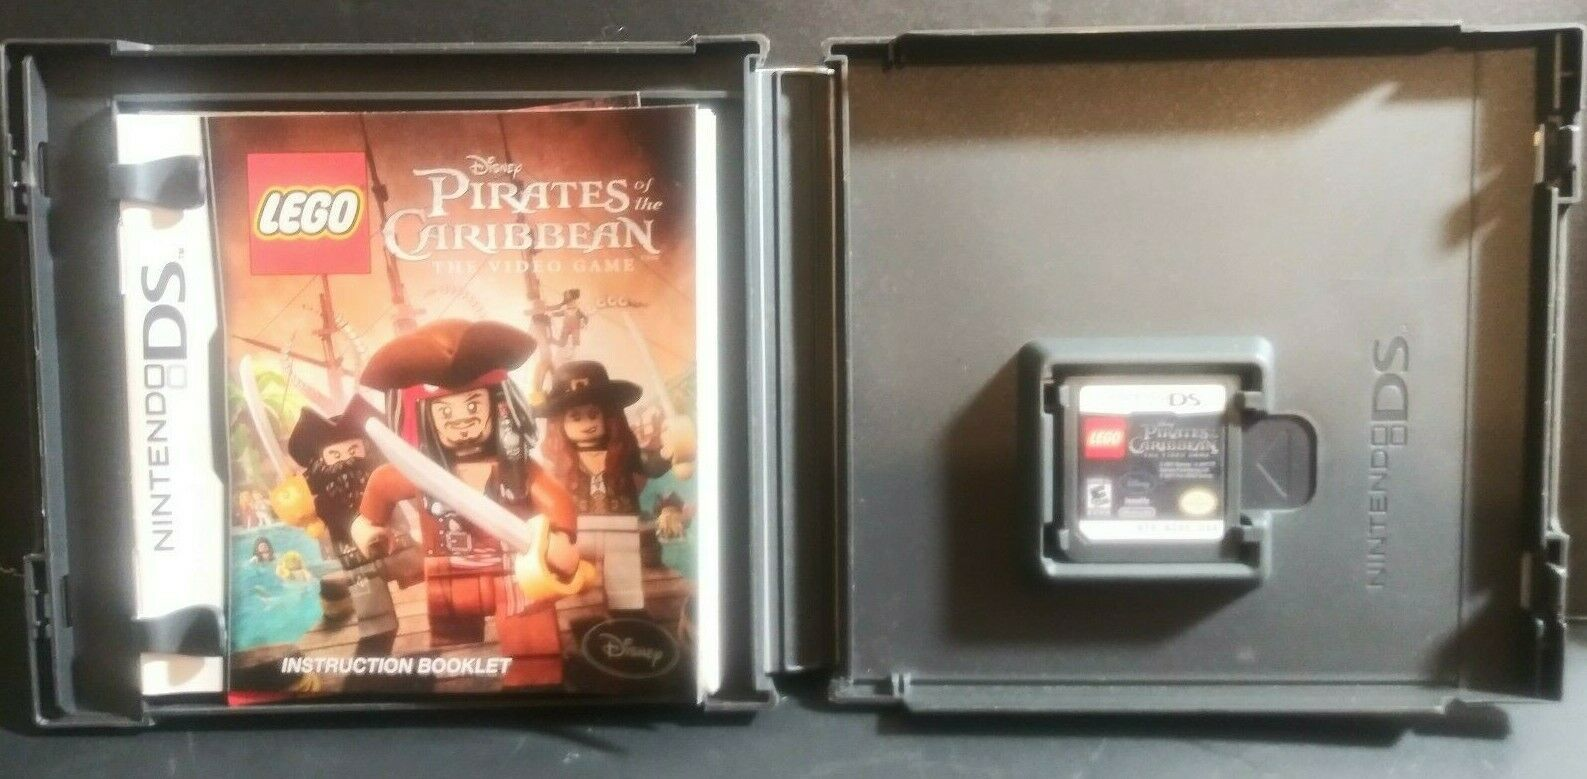 LEGO Pirates of the Caribbean: The Video Game  Nintendo 3DS, 2011 The video Game